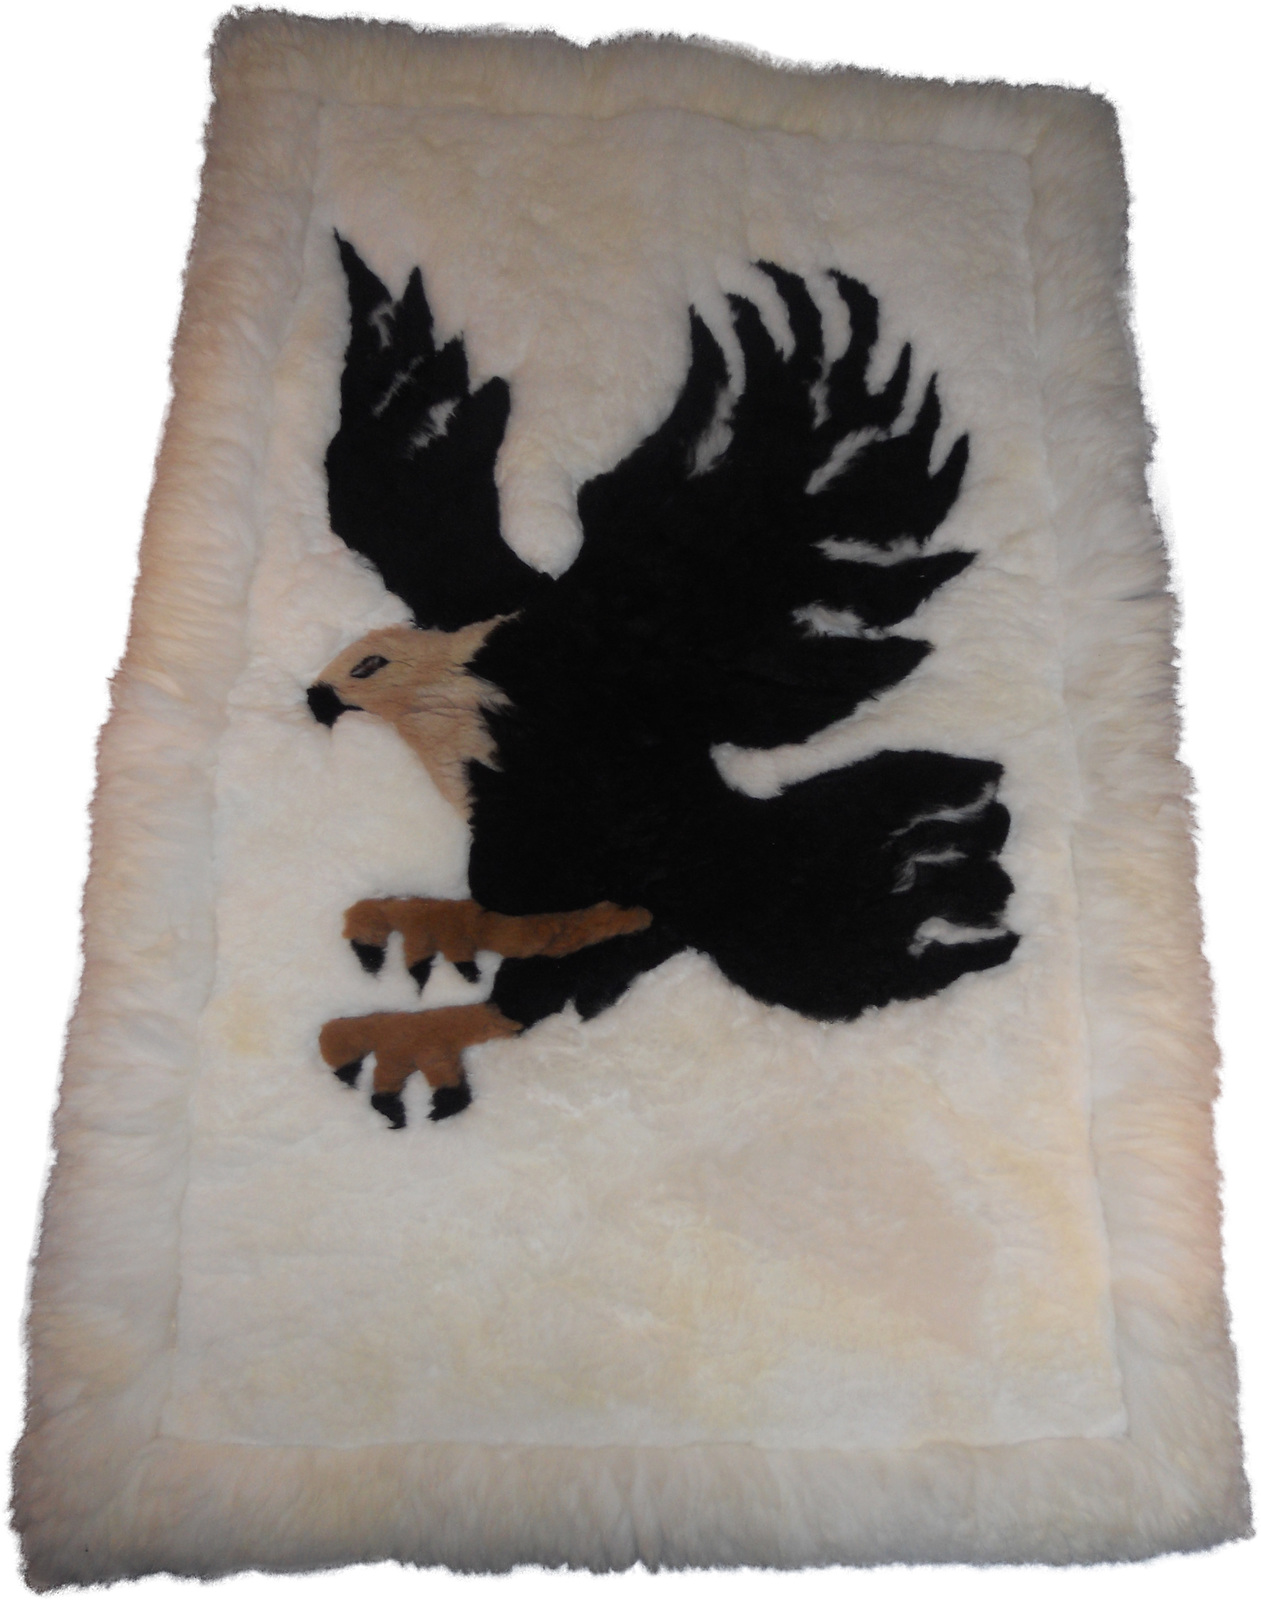 Rustic American eagle Unique alpaca rug 44 inches X 28 inches by aspenandes